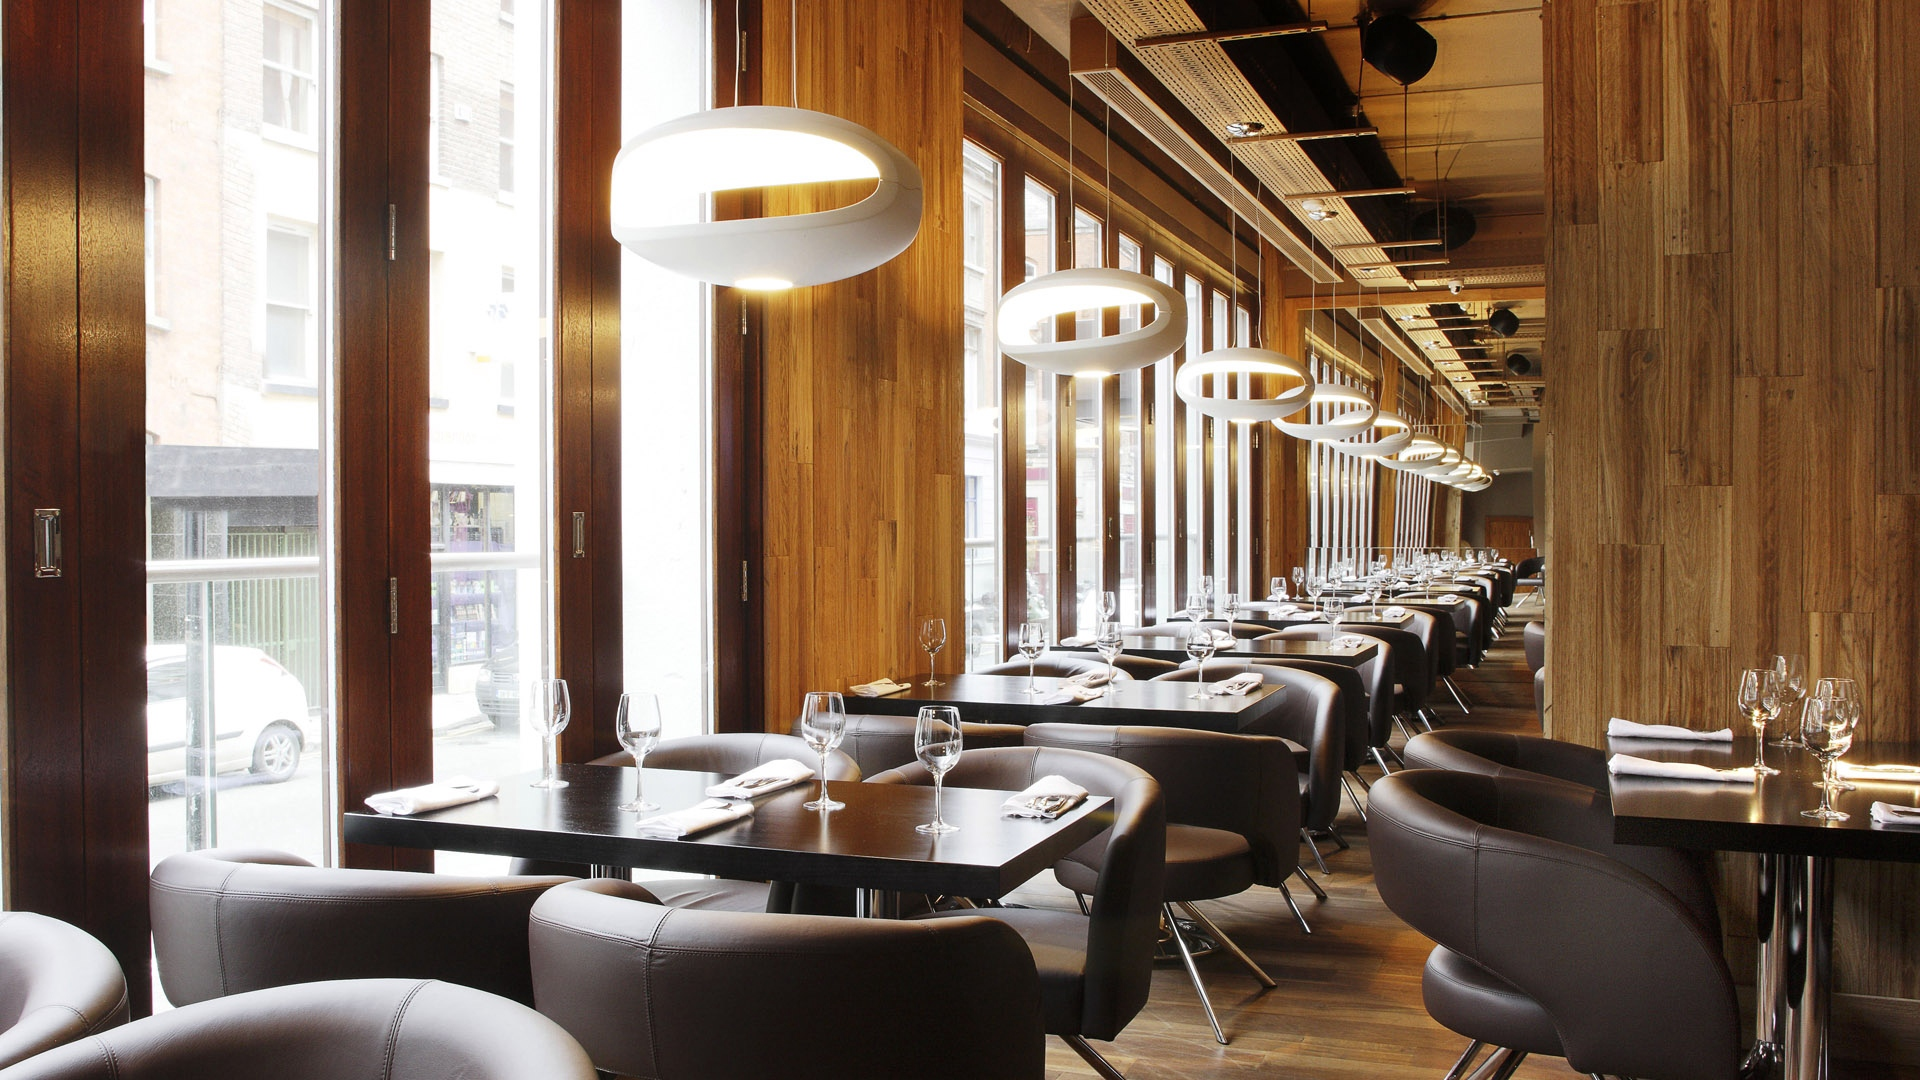 tables_chairs_instruments_style_restaurant_39251_1920x1080